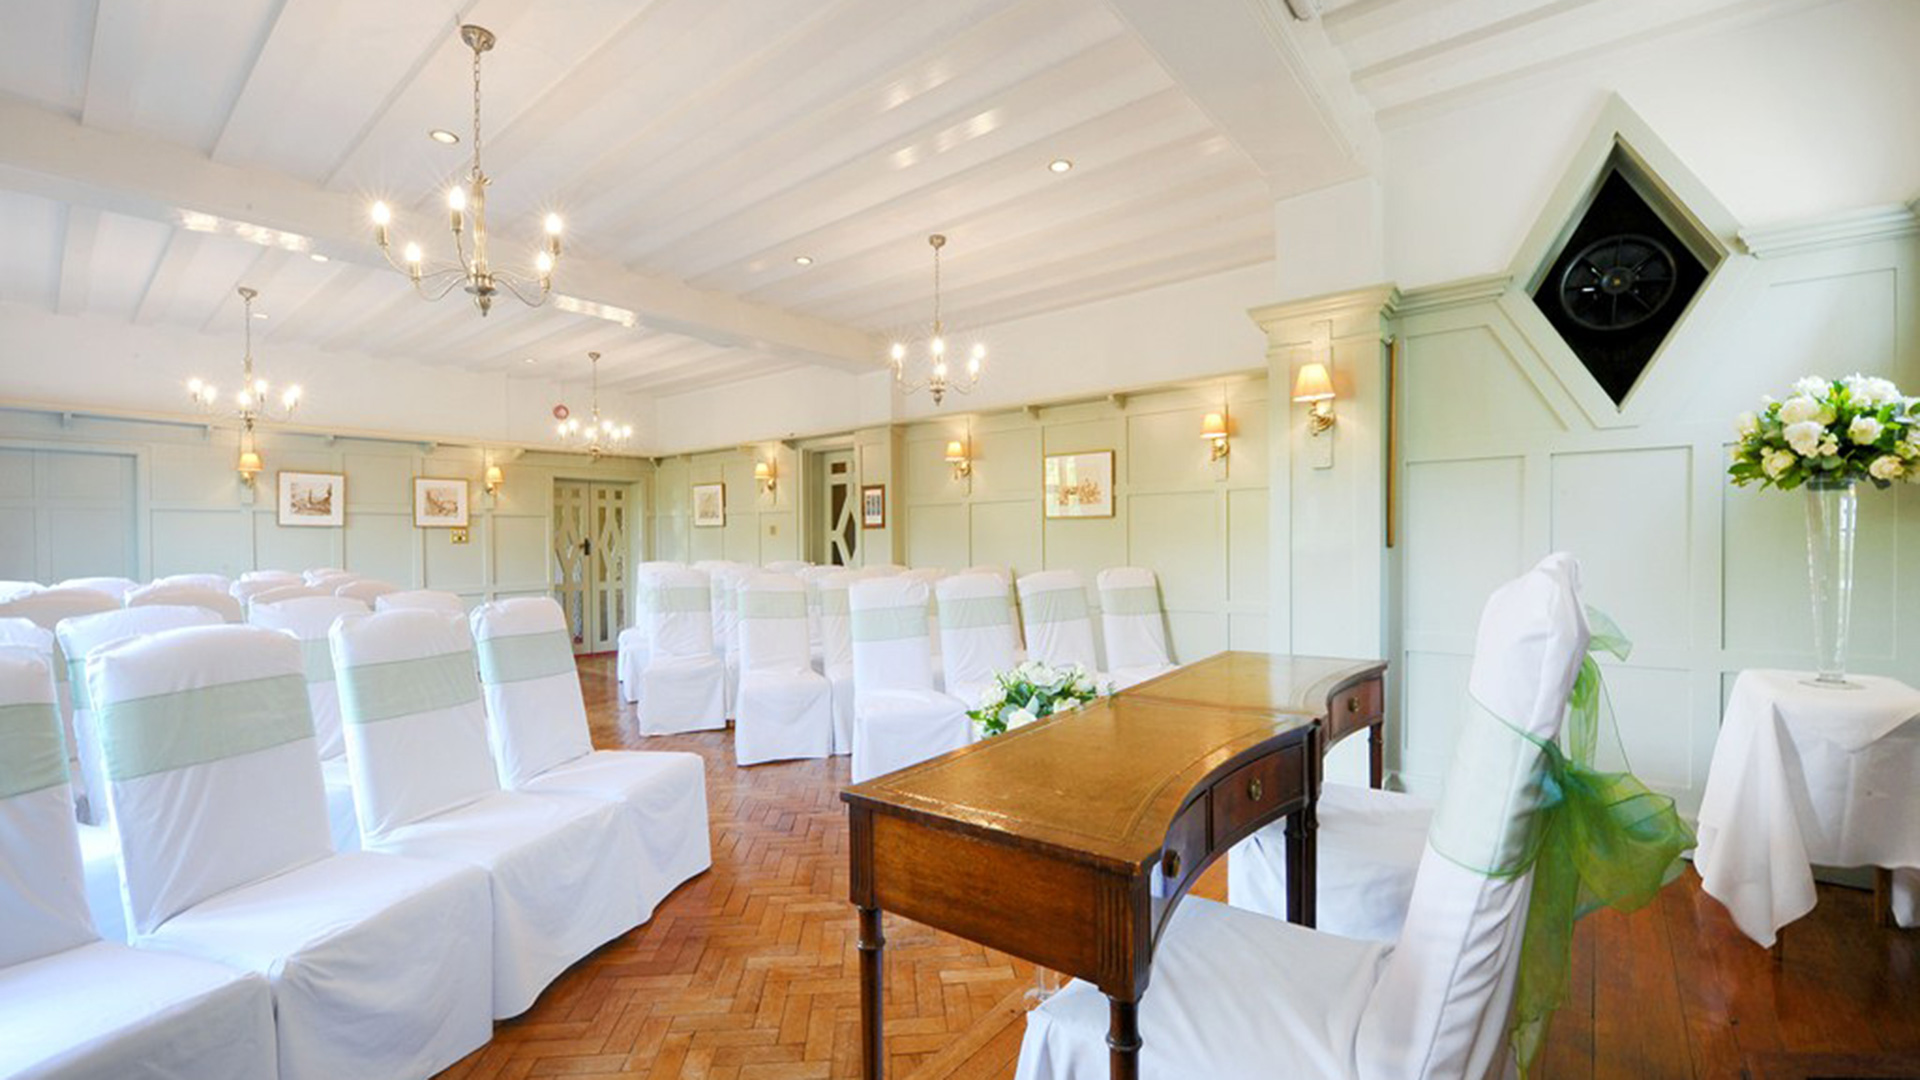 Montagu Arms Hotel, Beaulieu, New Forest, Hampshire - Pride of ...